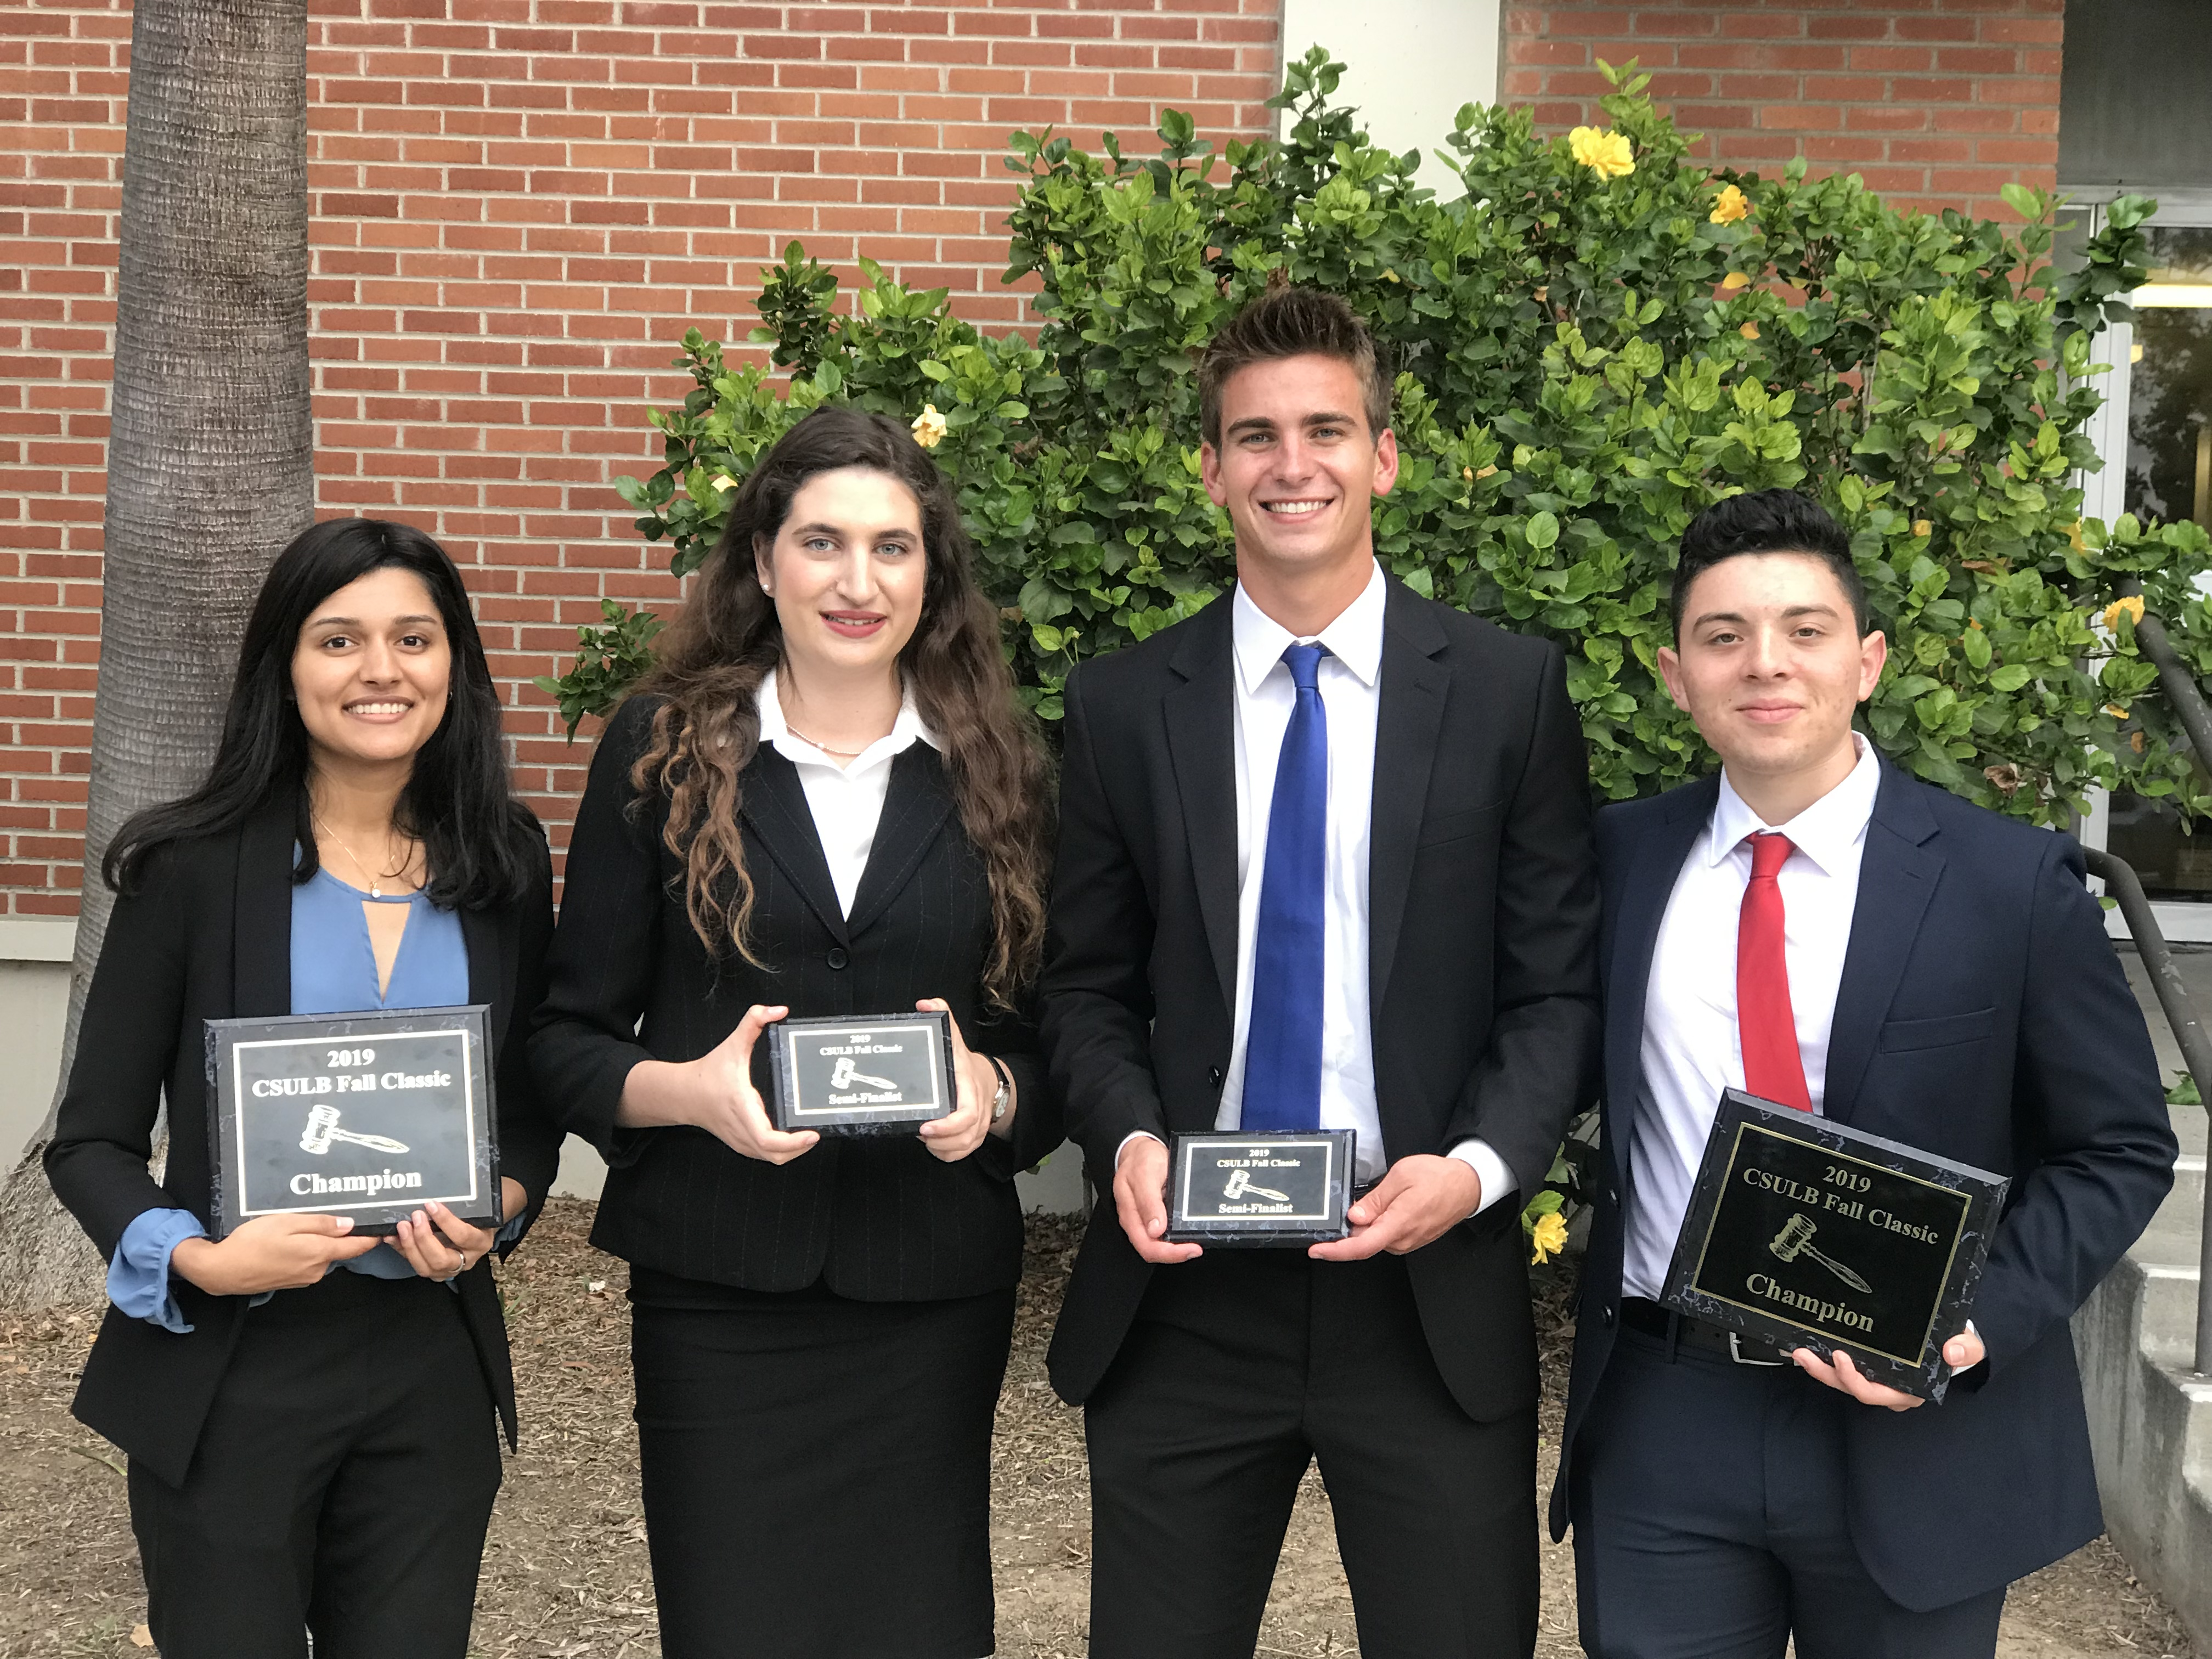 First and fourth place winners at the CA Classic holding awards